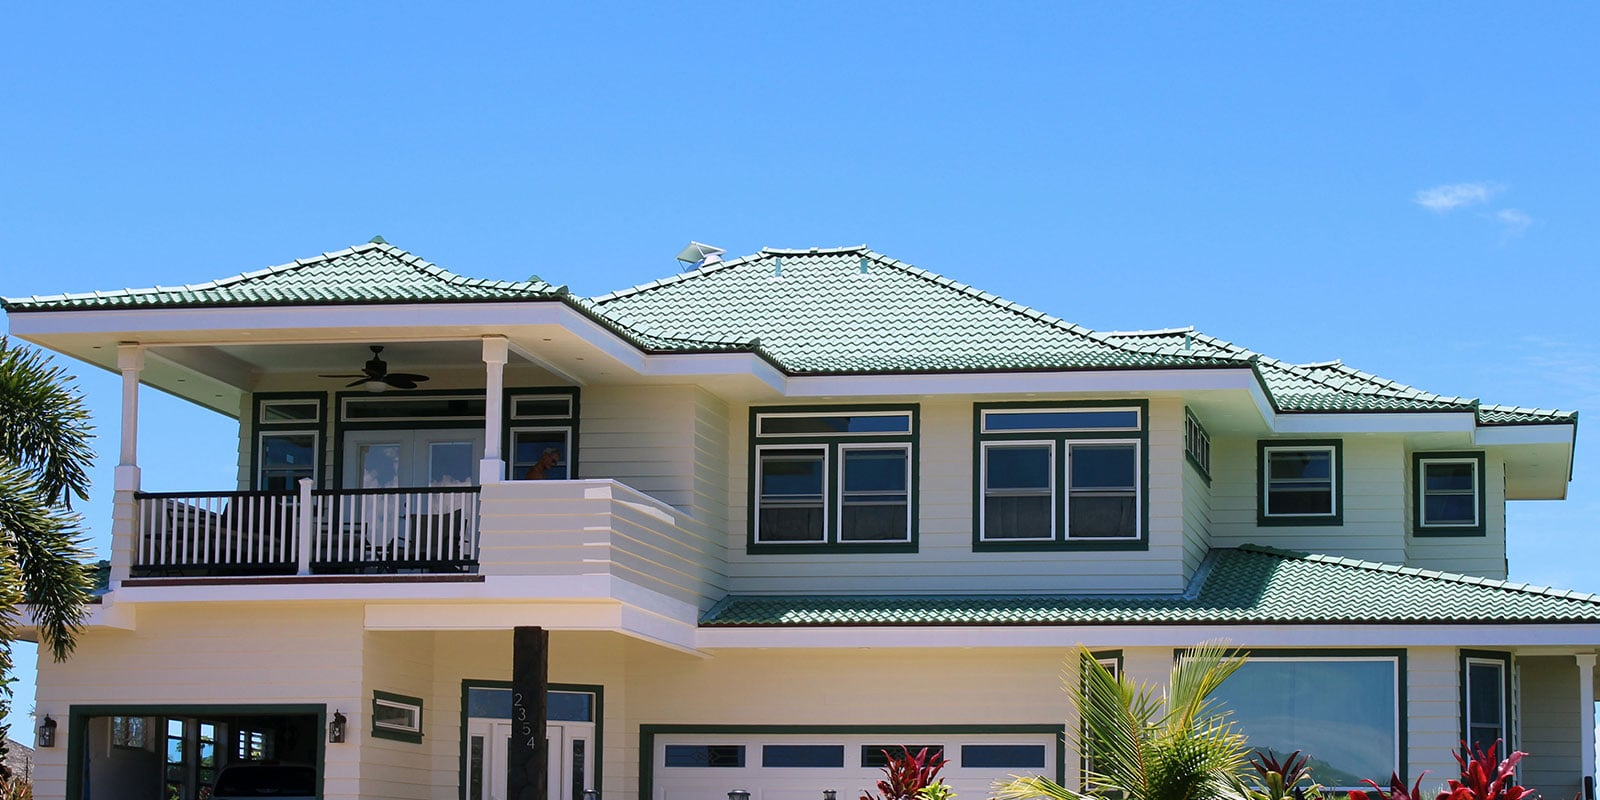 Quarrix Composite Tile Roof